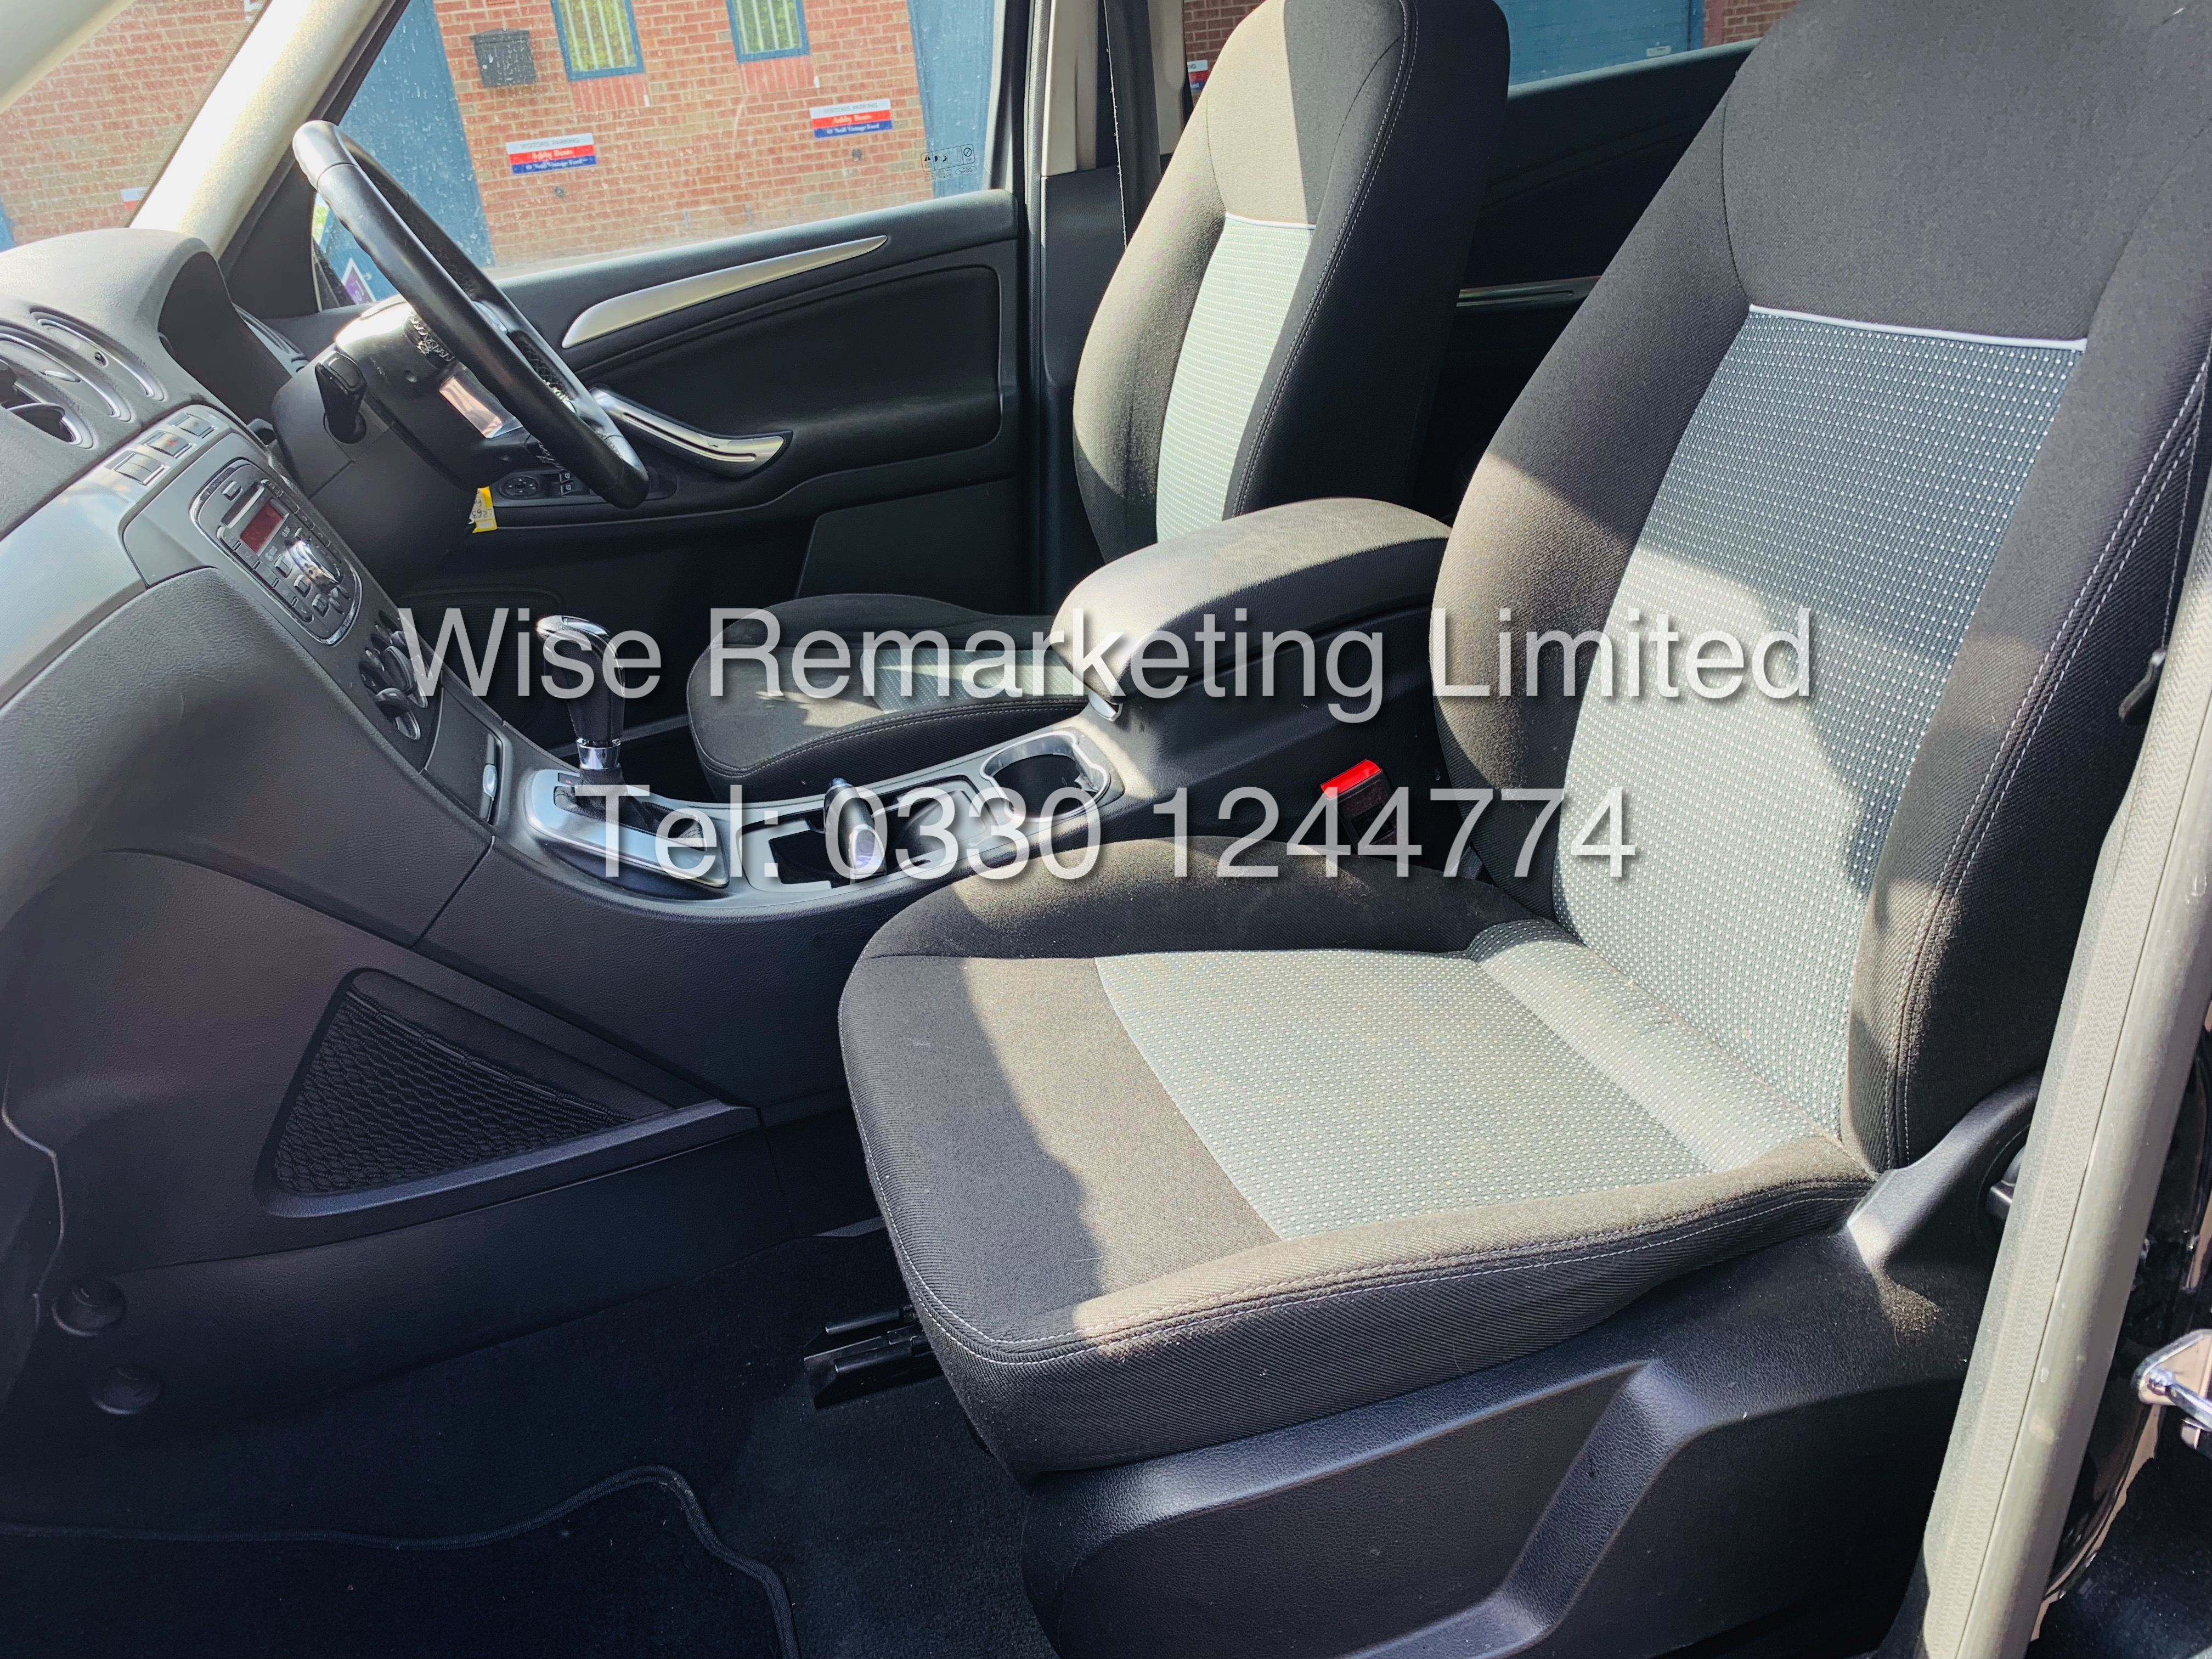 FORD GALAXY ZETEC 2.0L TDCI AUTO 7 SEATER MPV 63 REG *1 OWNER* - Image 15 of 18